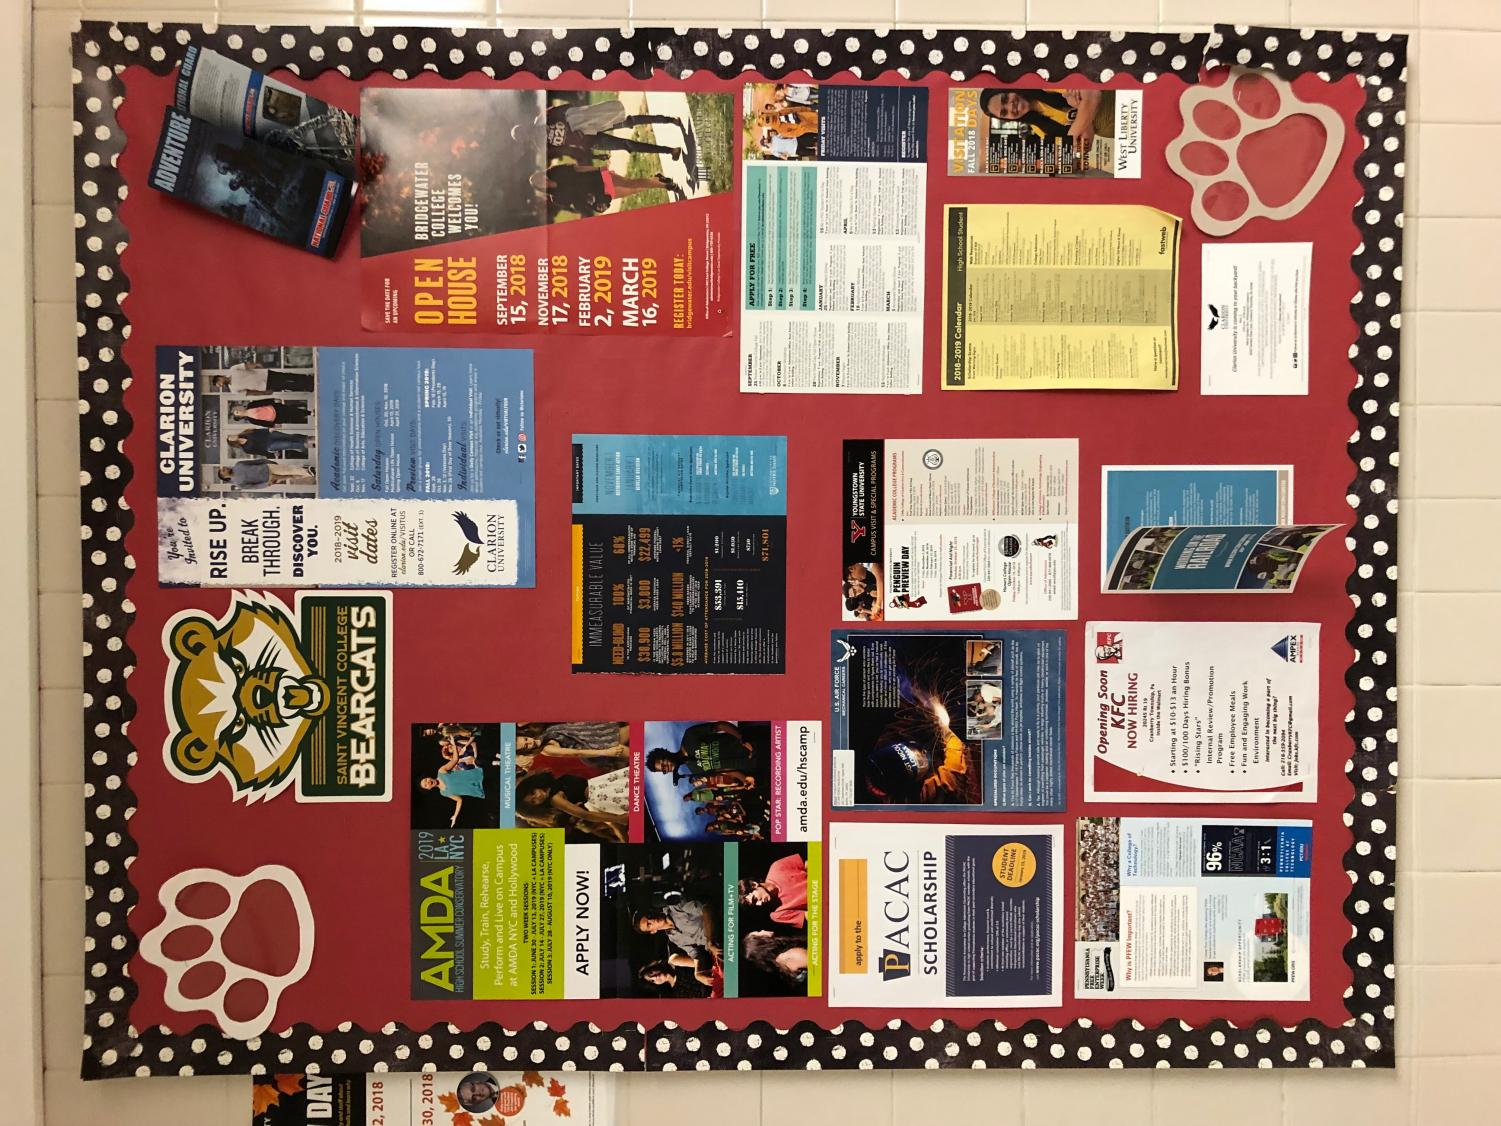 This bulletin board is filled with flyers of colleges  and additional information for those who are interested. The board can be found on the main floor at the high school.